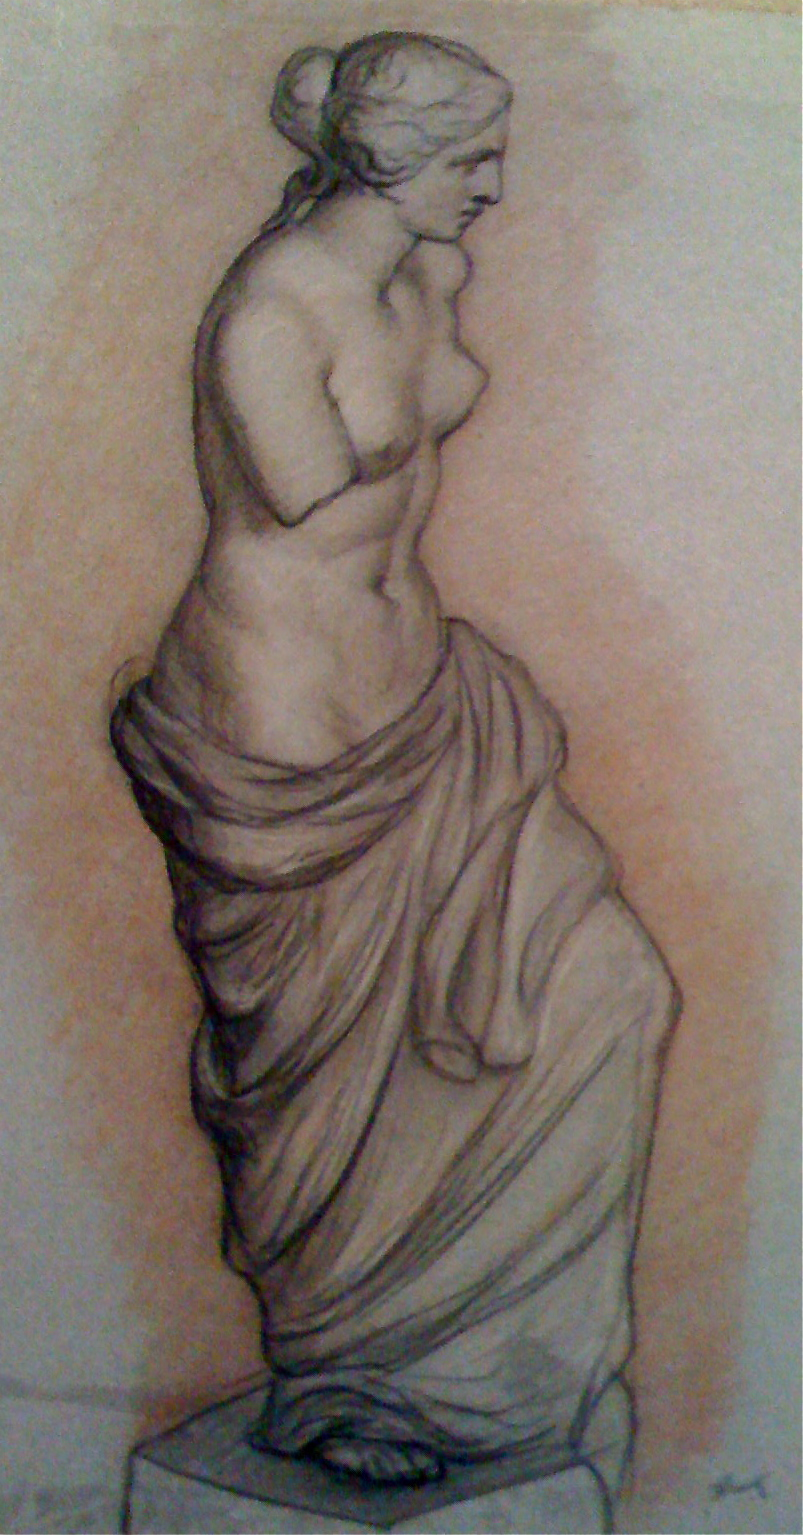 Title: Study in Rome Year: c. 1839 Medium: Charcoal and Red Chalk drawing on rare Venice Blue Paper Image size: 25 x 15